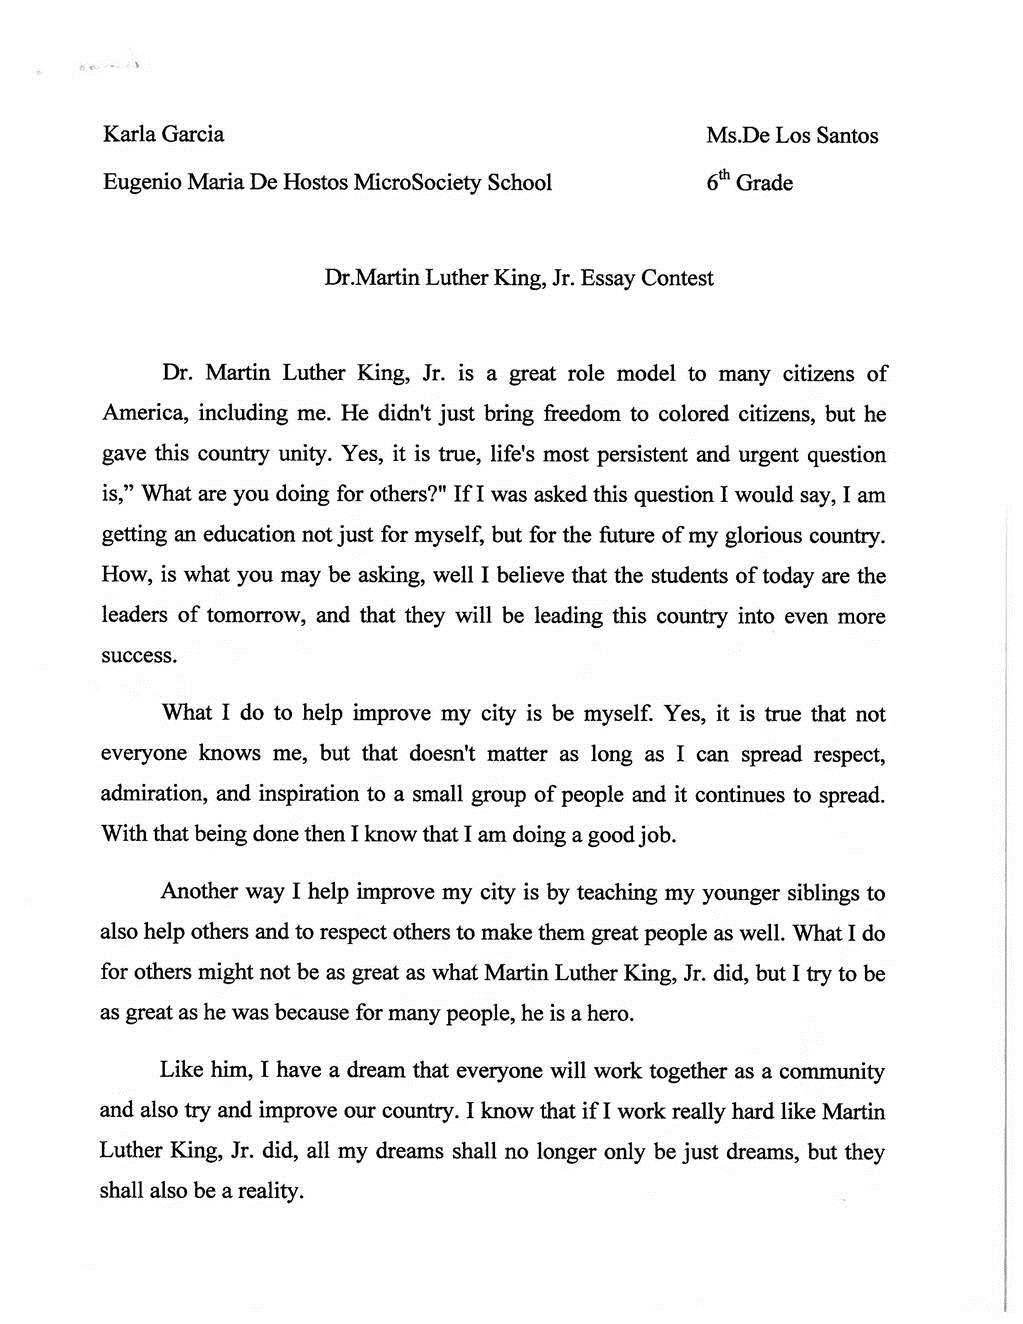 student government essay mlk essays essay describing mlk as a  mlk essays essay describing mlk as a historical leader the martin essays about martin luther king write a student council